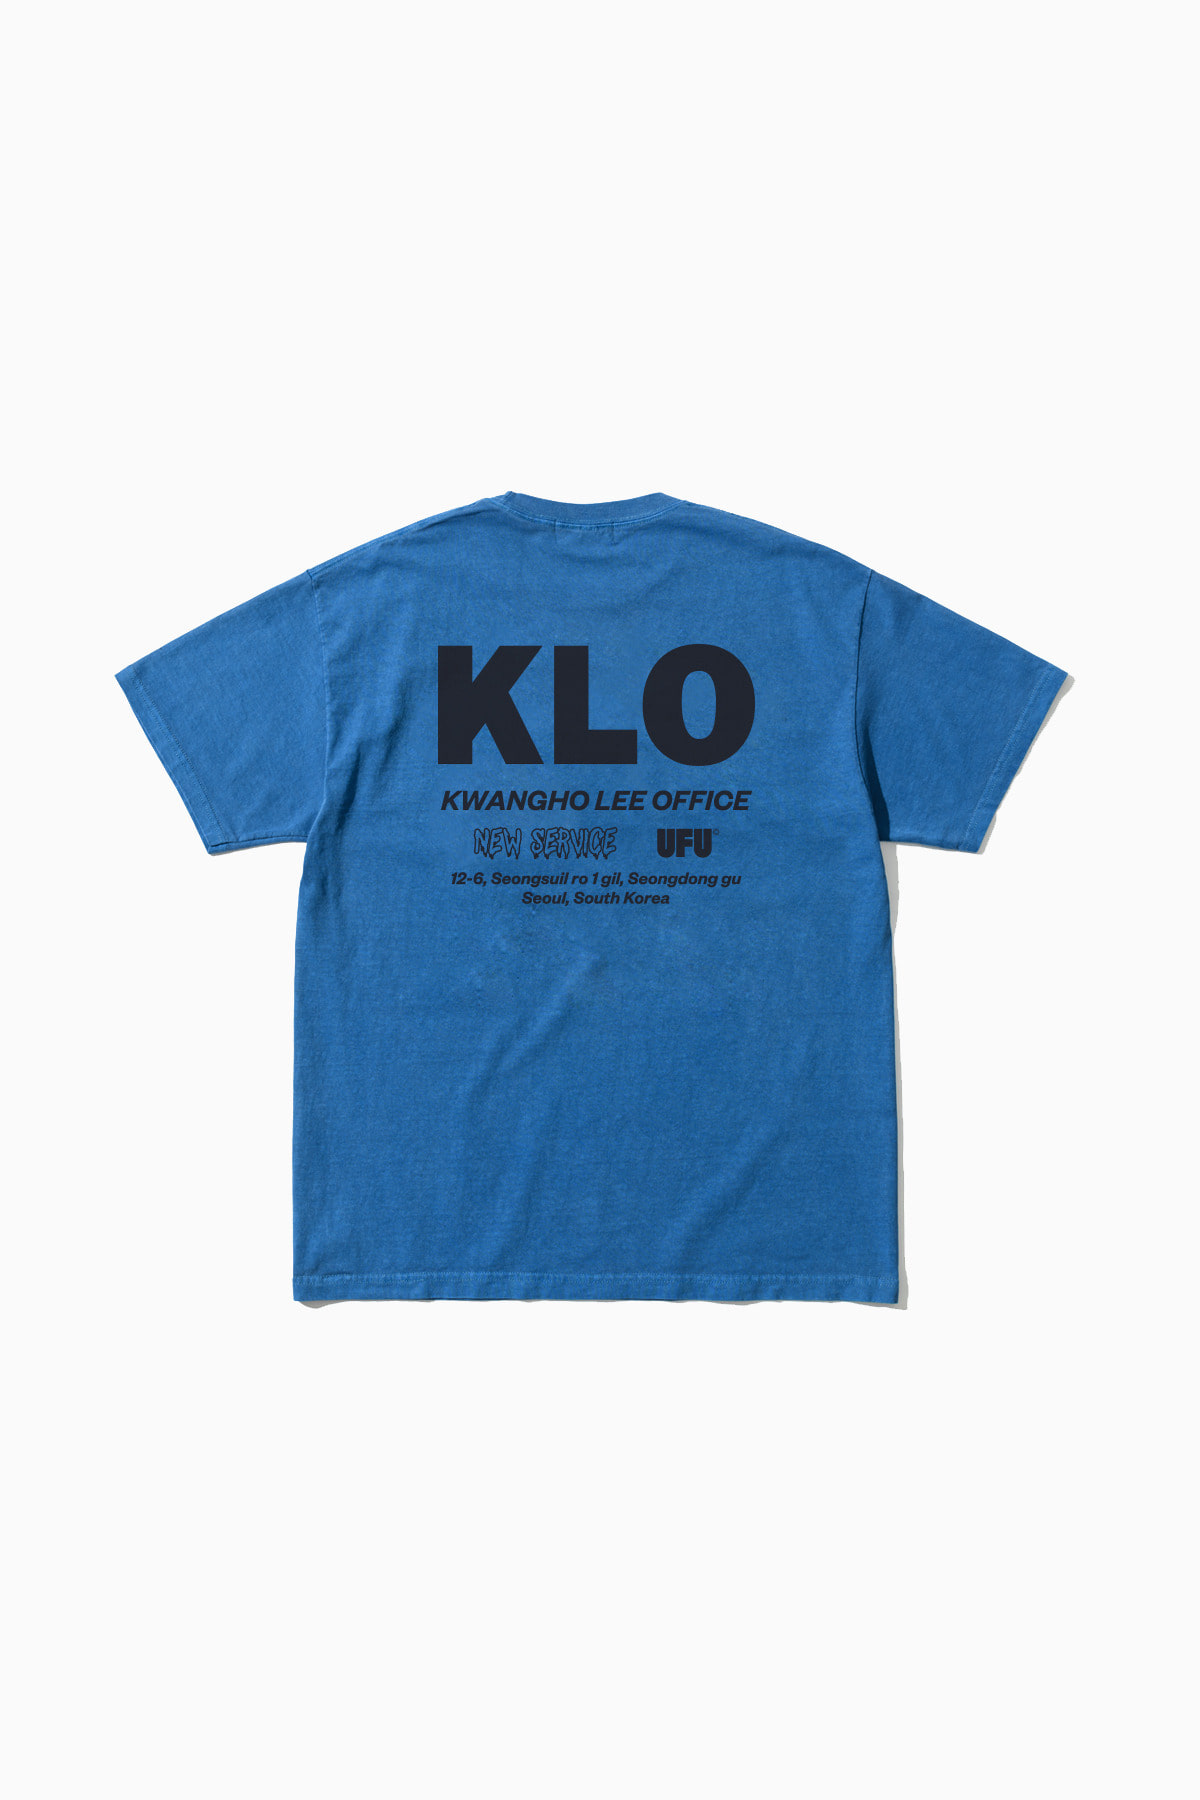 UFU X KWANGHO LEE NEW SERVICE T-SHIRT_BLUE